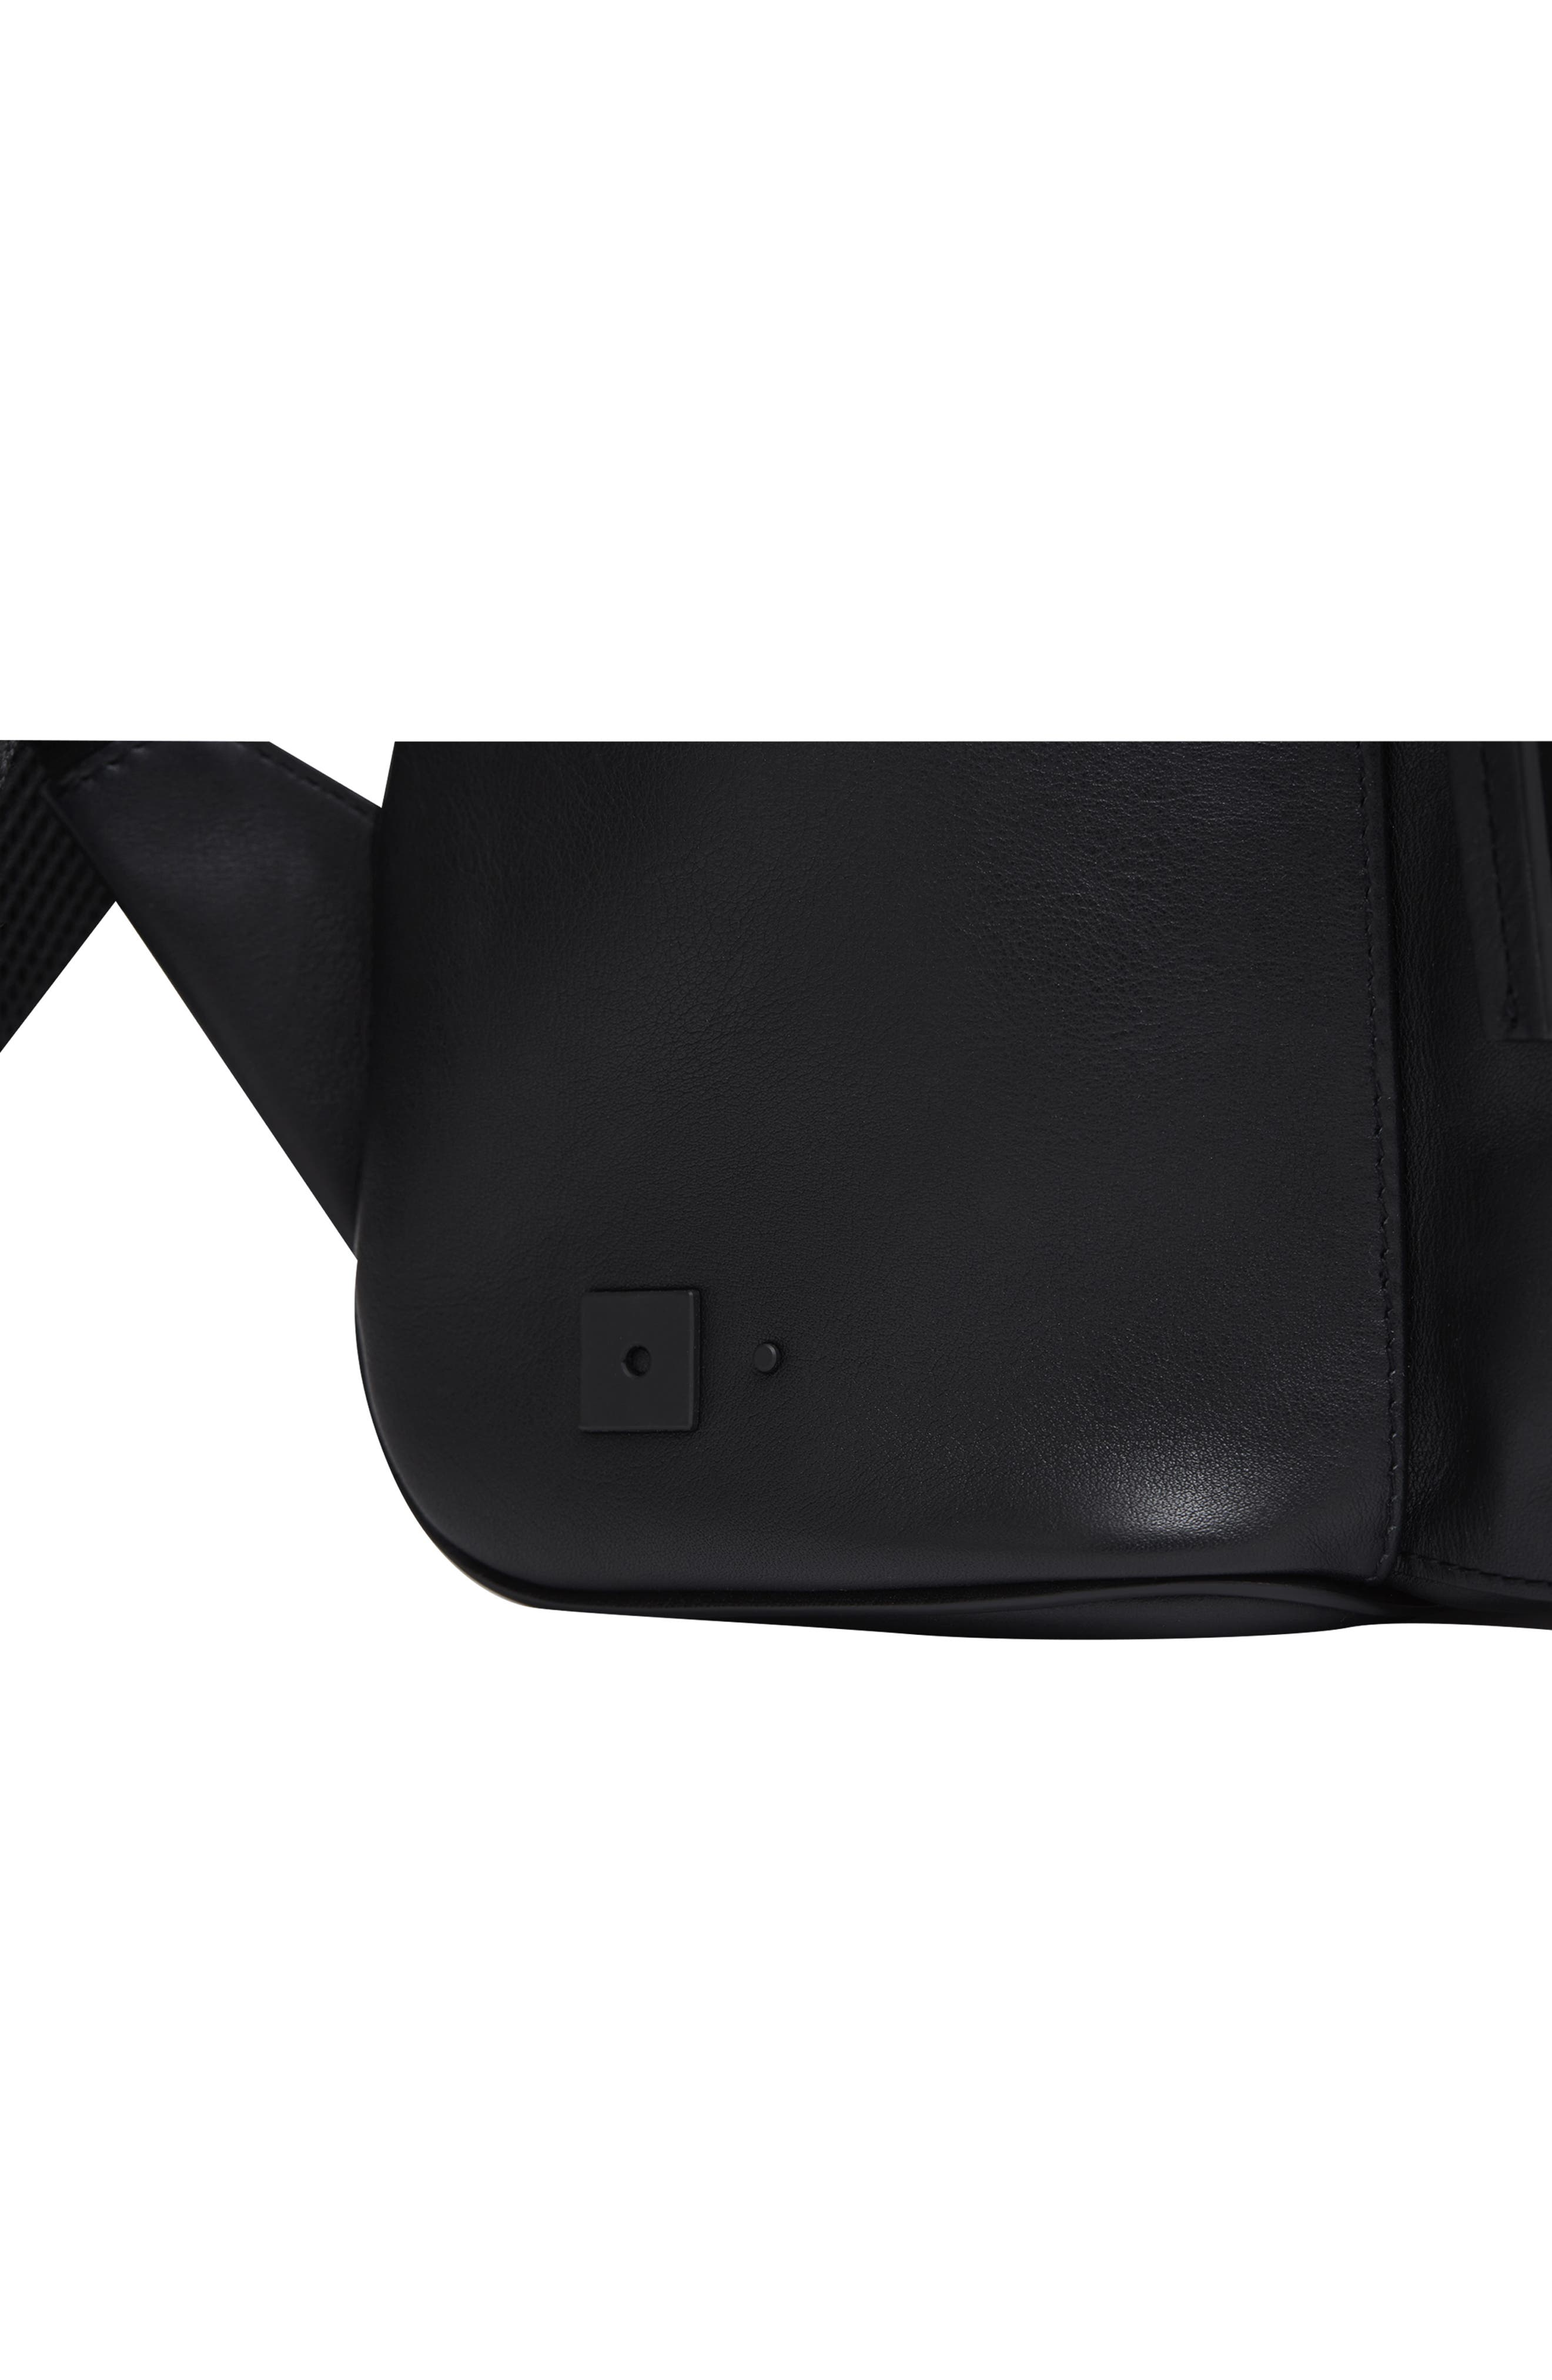 Leather Backpack,                             Alternate thumbnail 12, color,                             BLACK LEATHER